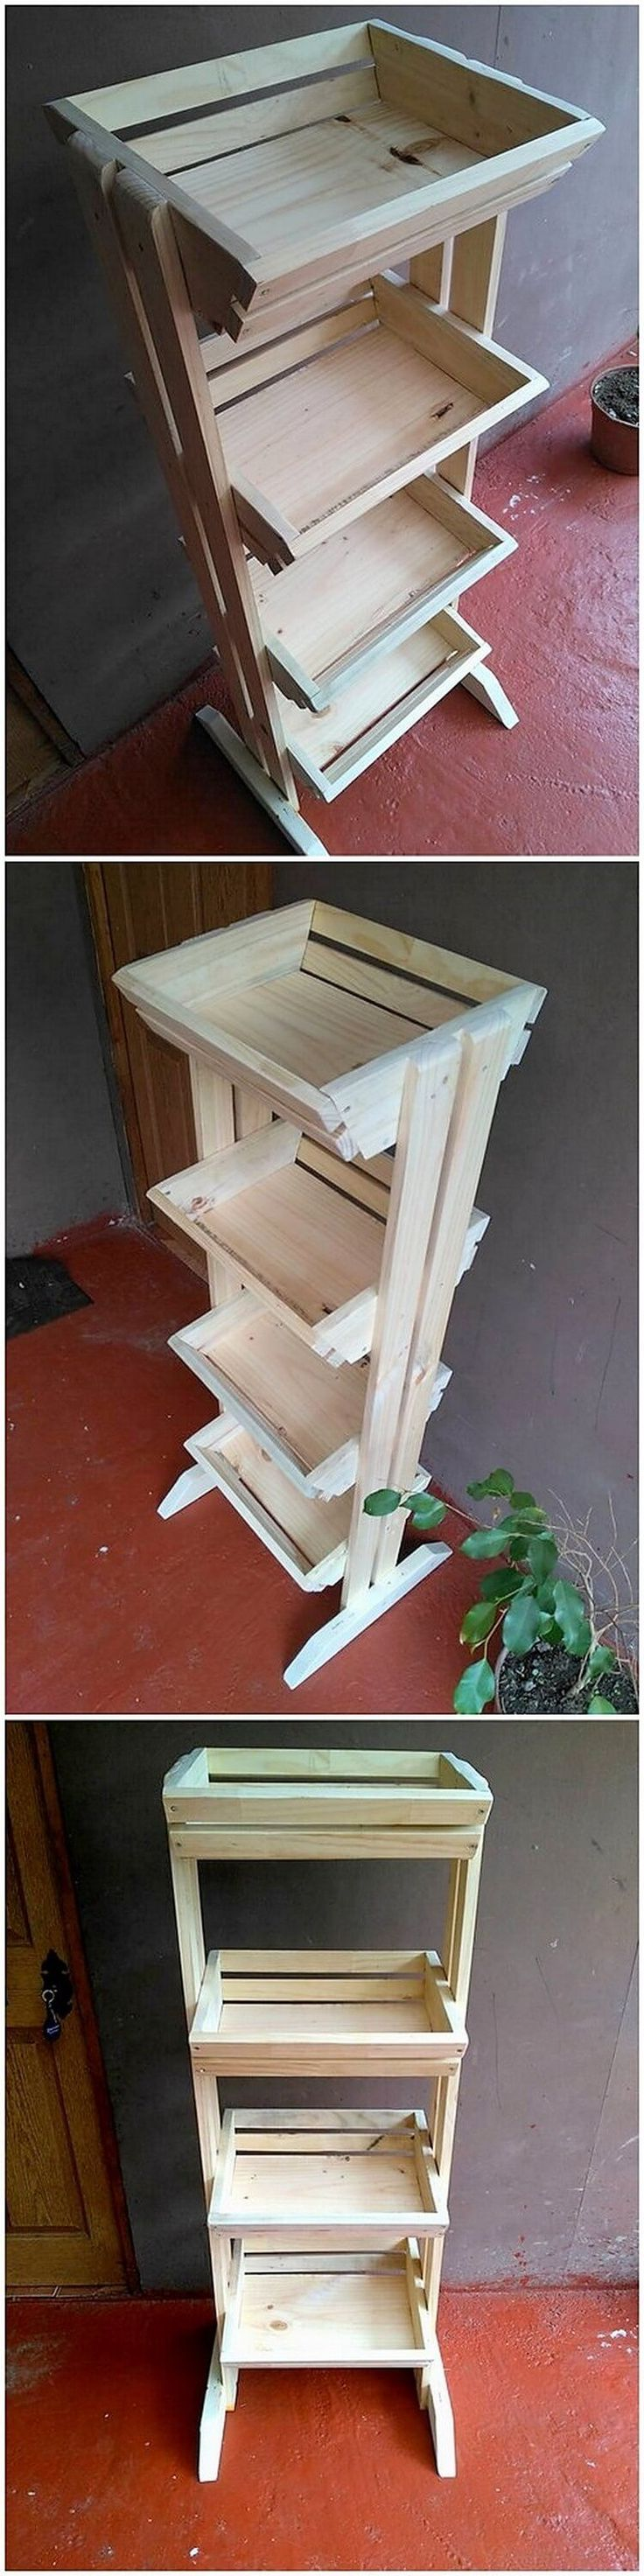 In this image, you can clearly get a view idea of the fruit and vegetable rack option for your kitchen areas. Mostly the plastic rack options gets broke up that is a complete wastage of money. So choosing the wood pallet for the fruit and vegetable rack design do come about to be one of the perfect options.